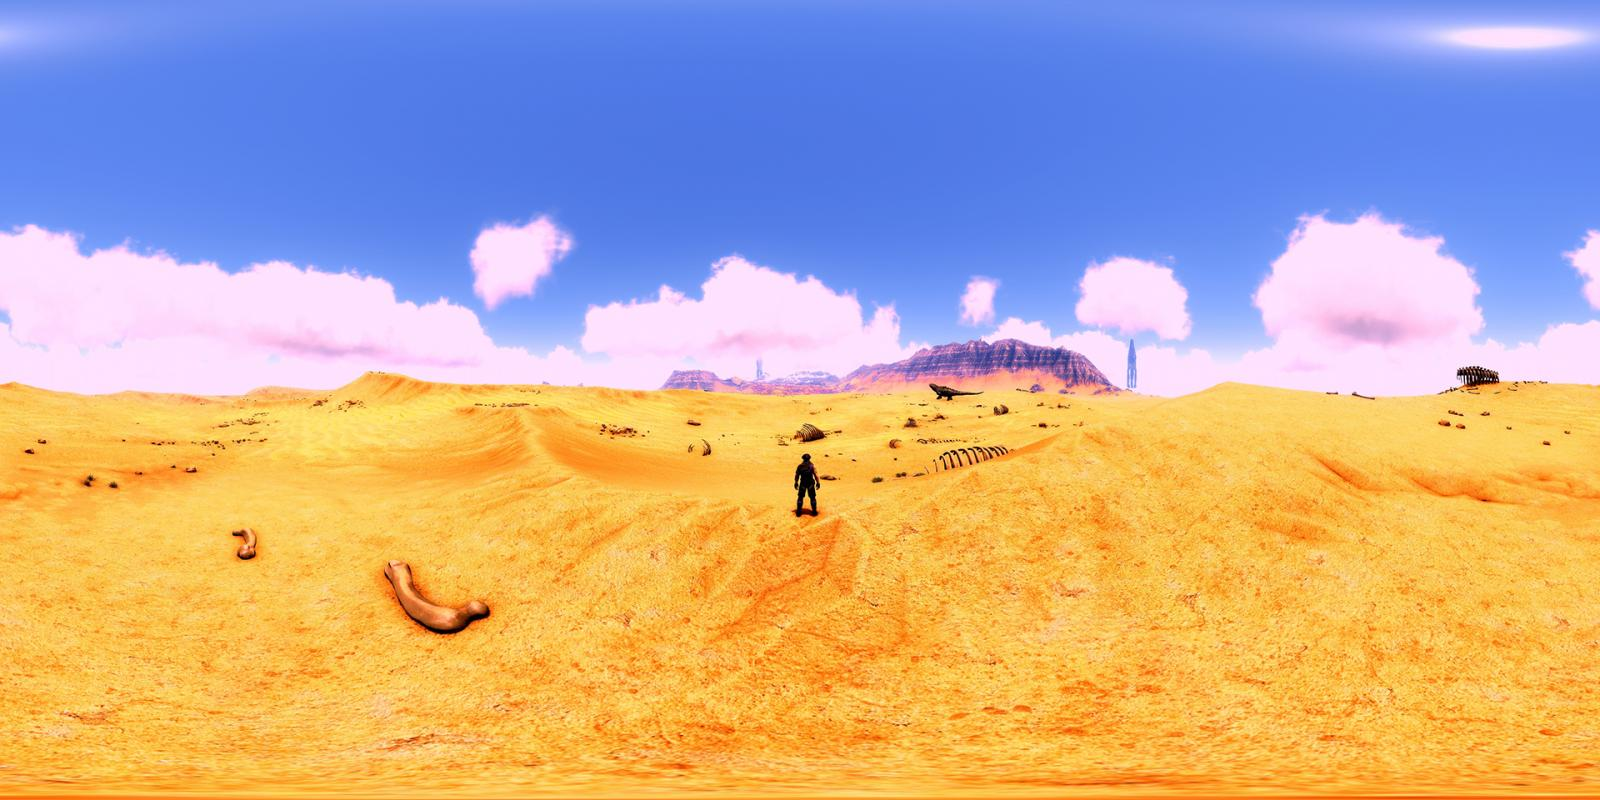 large.5ab03c007e786_Goober1823-LonelyWastelands-Panoramic360Stereoscopic3D.jpg